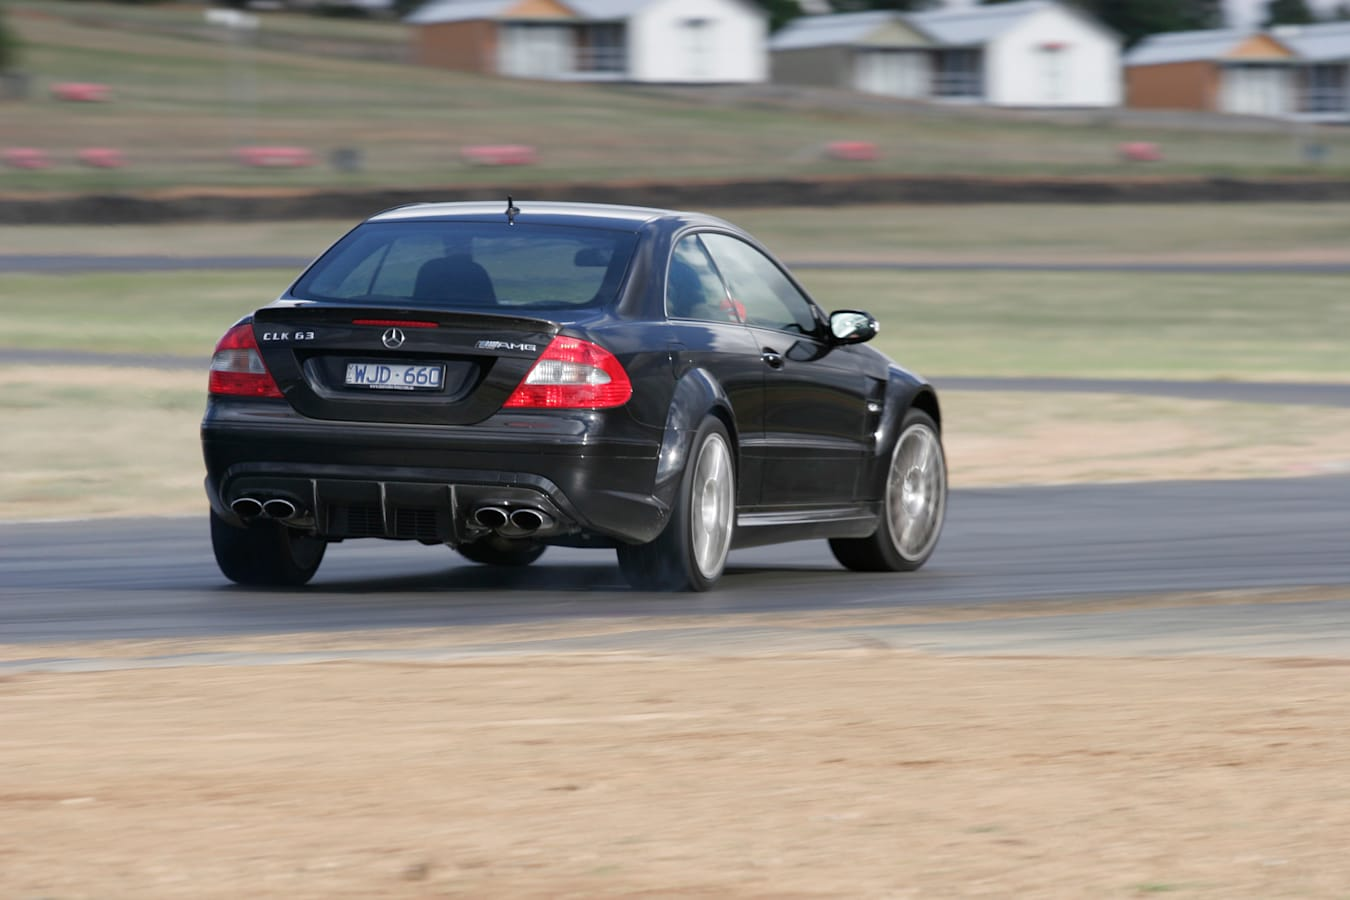 Motor Features GT 2 V CLK 63 Action T Wielecki 40